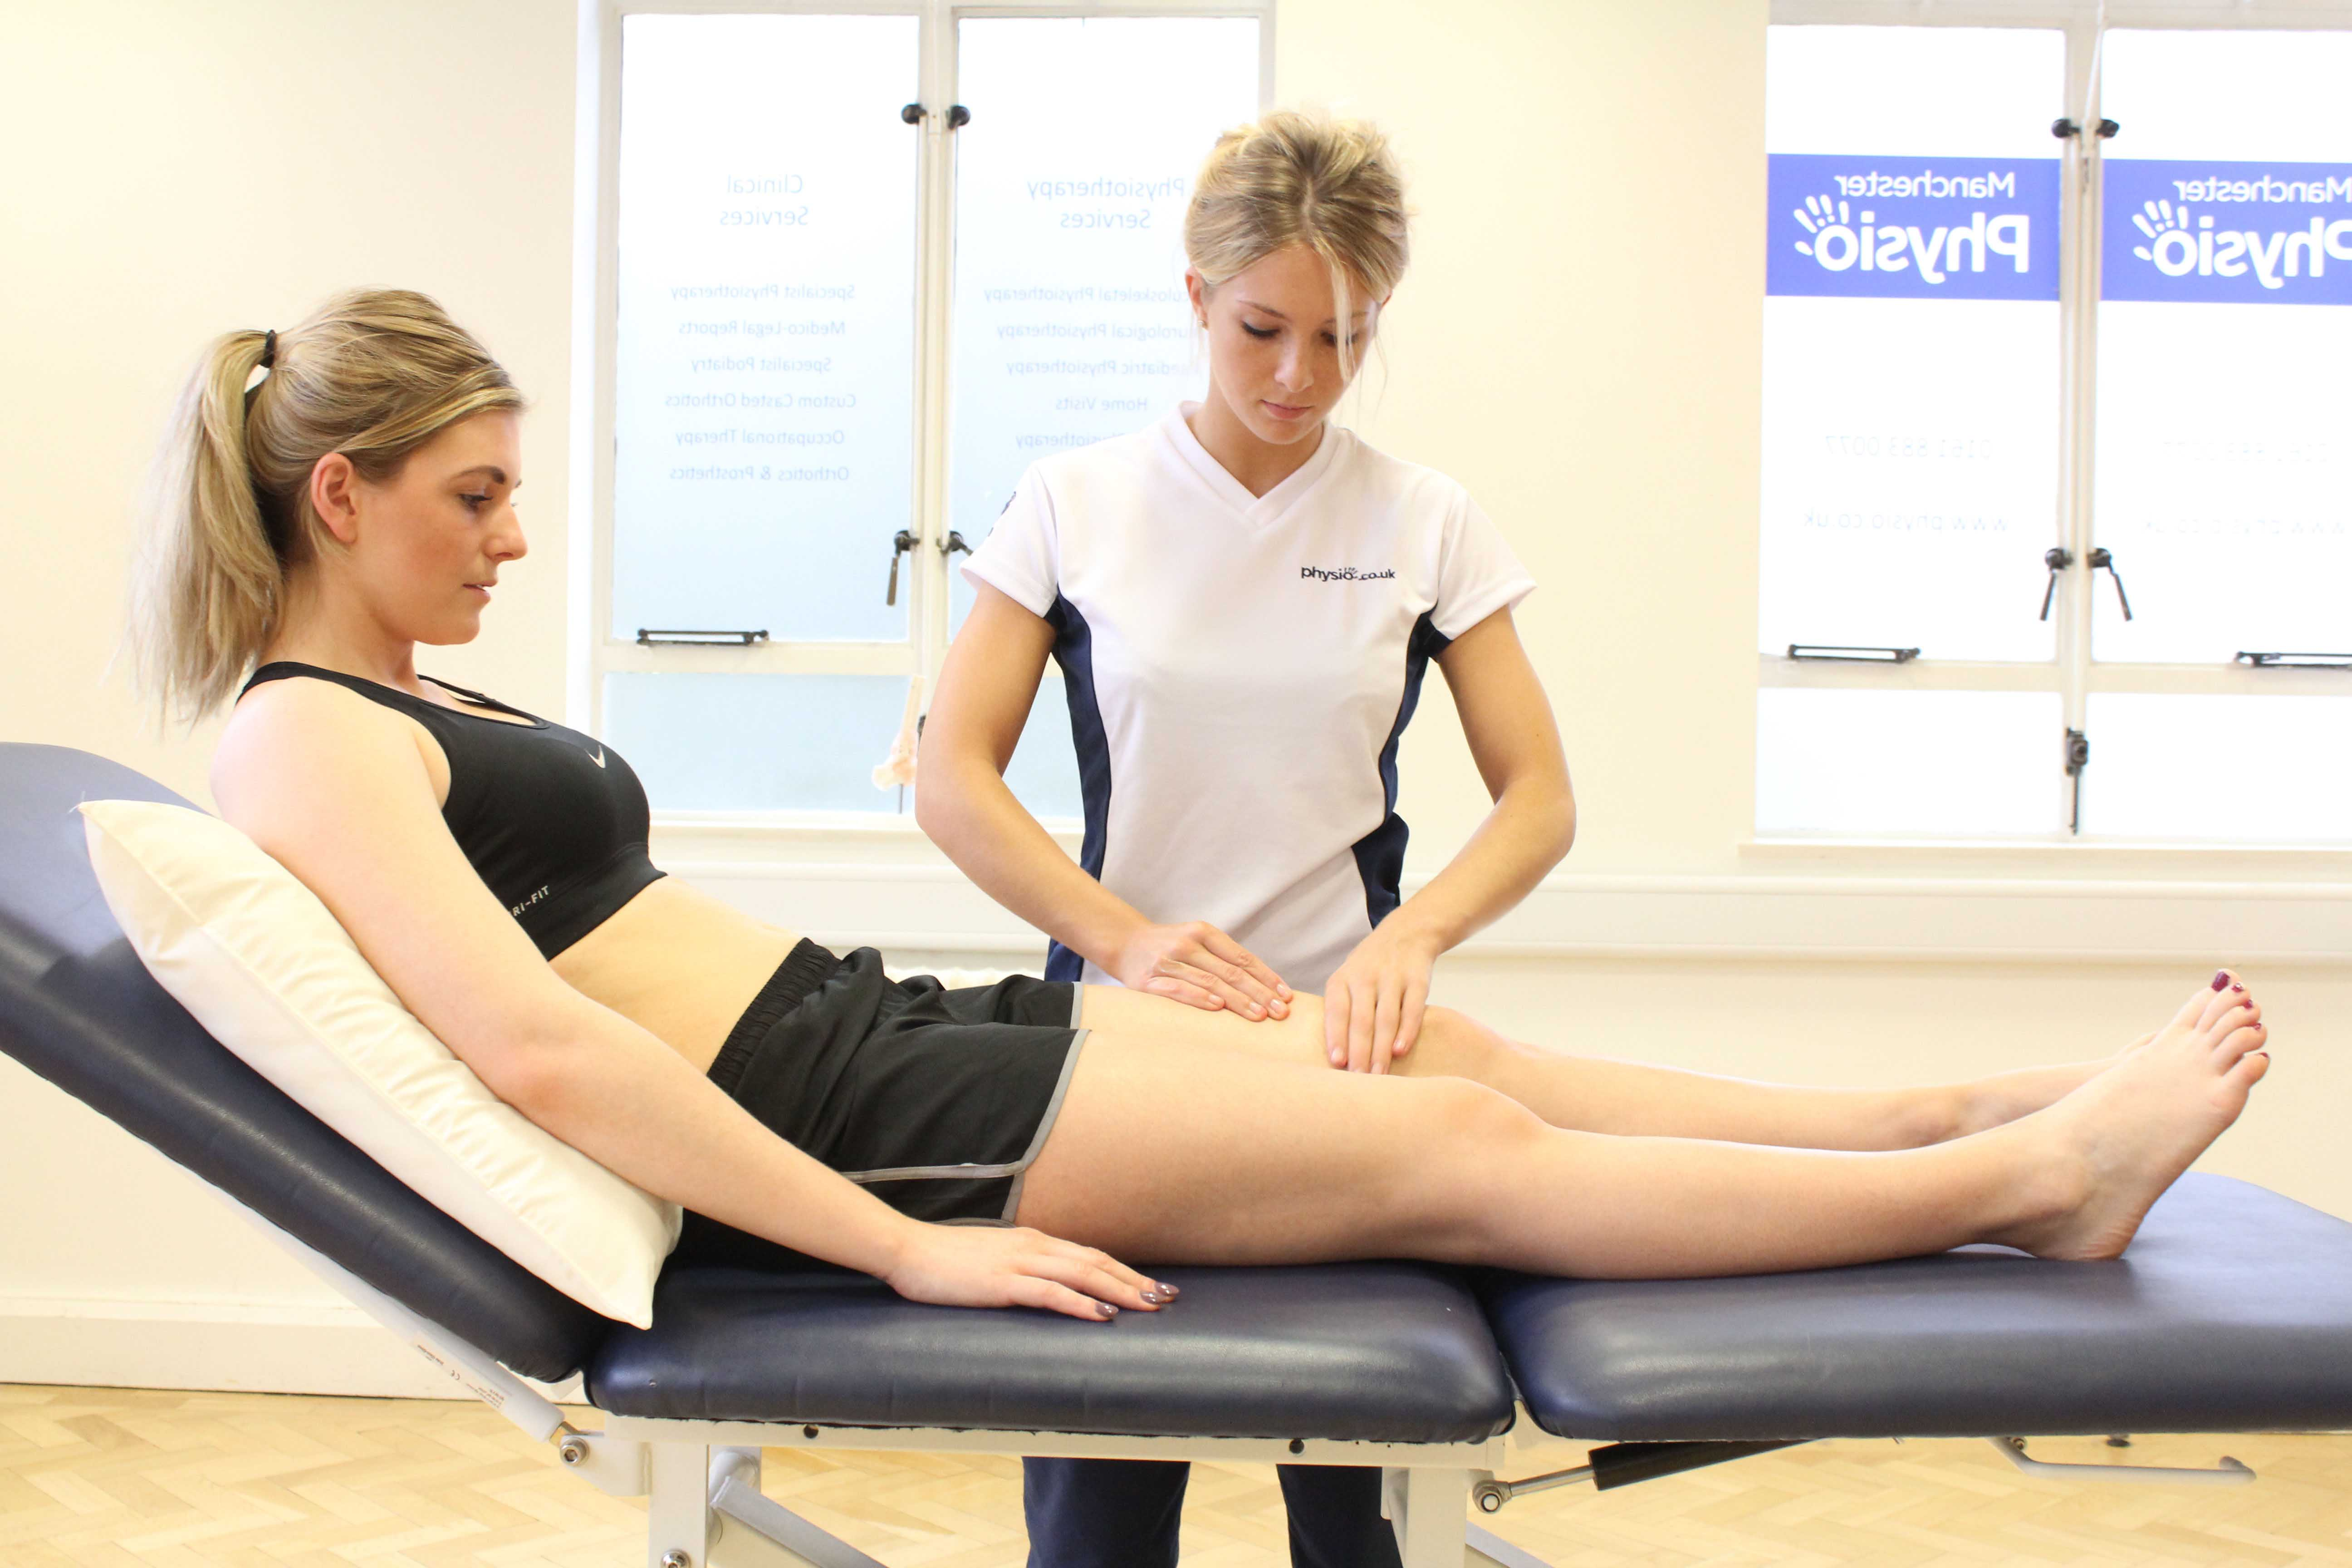 Post injury massage of rectus femoris muscle to aid recovery